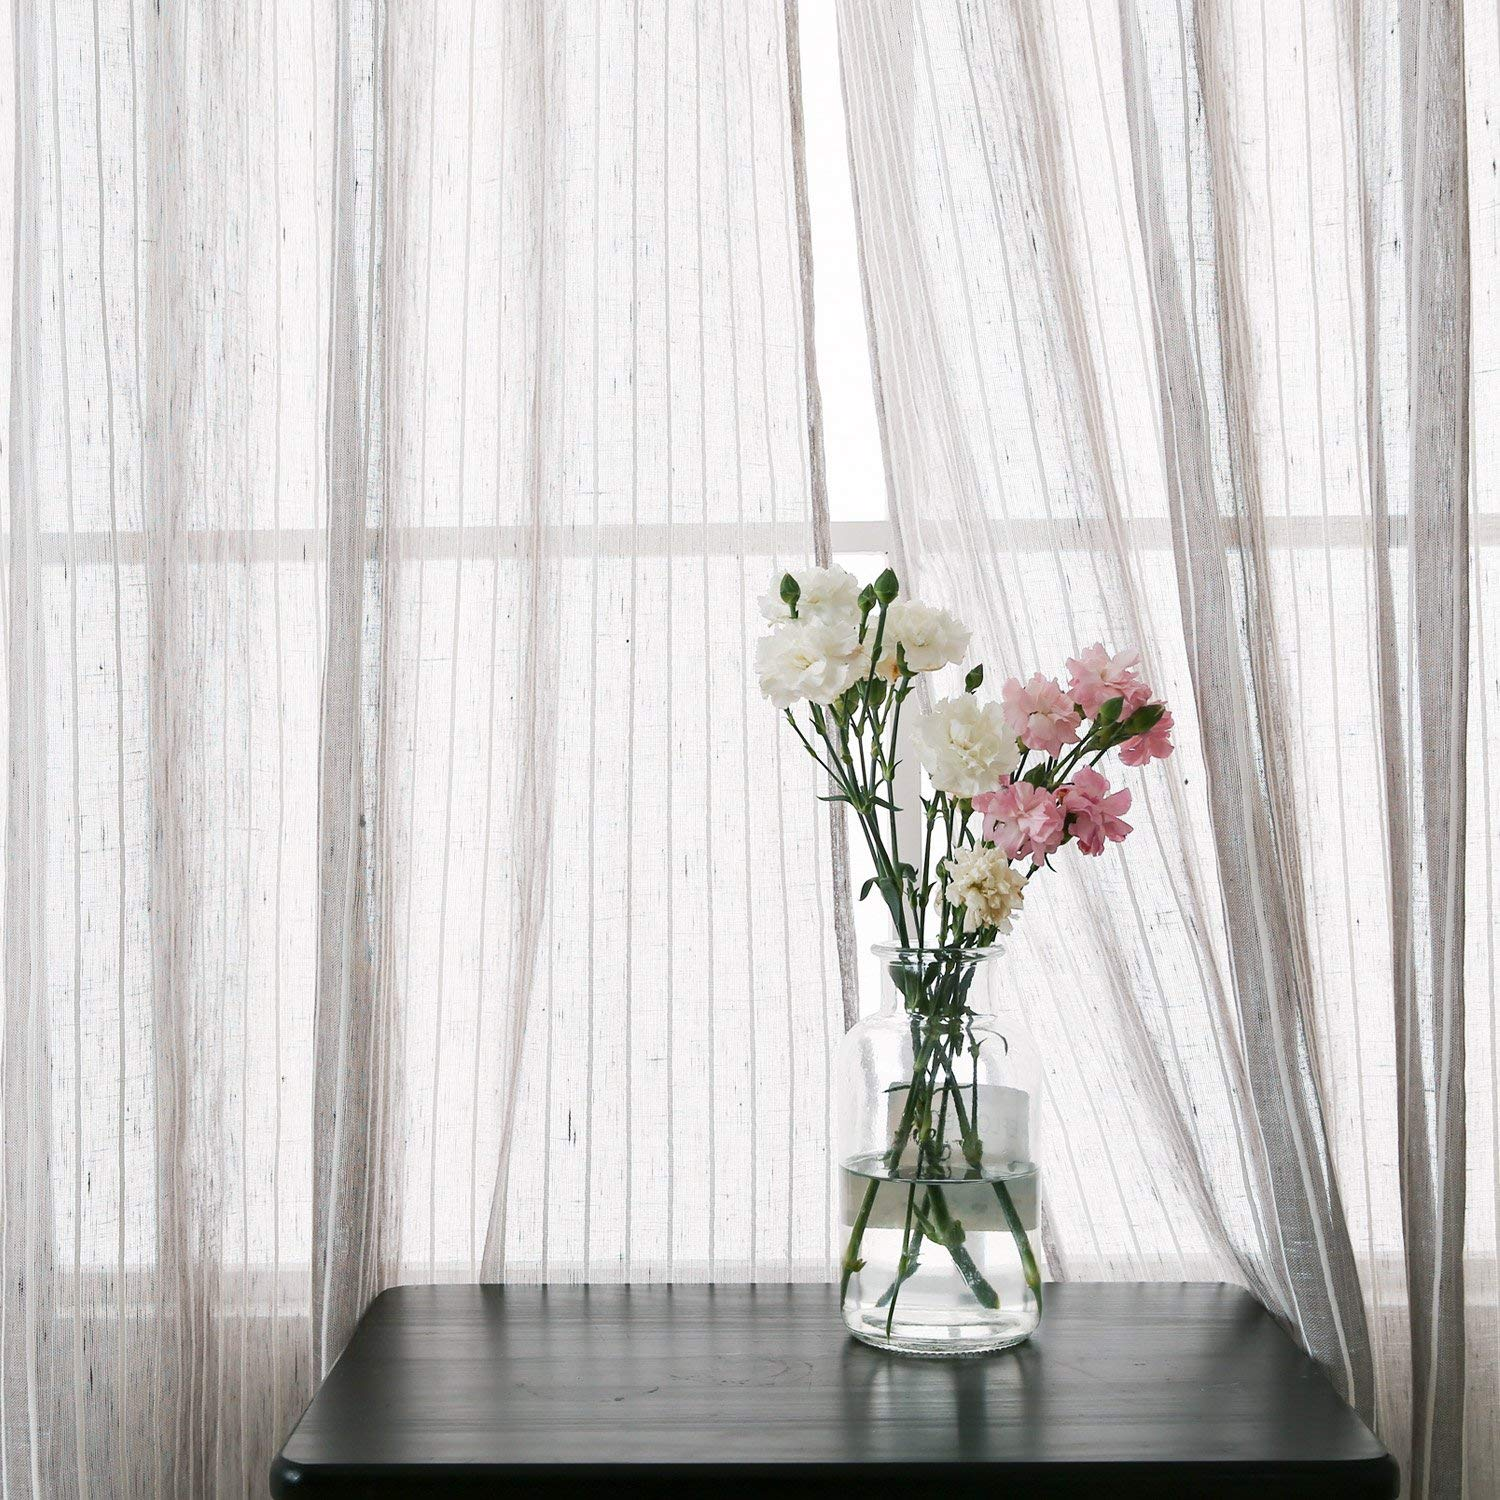 These curtains are light weight and have just enough detail for any space.